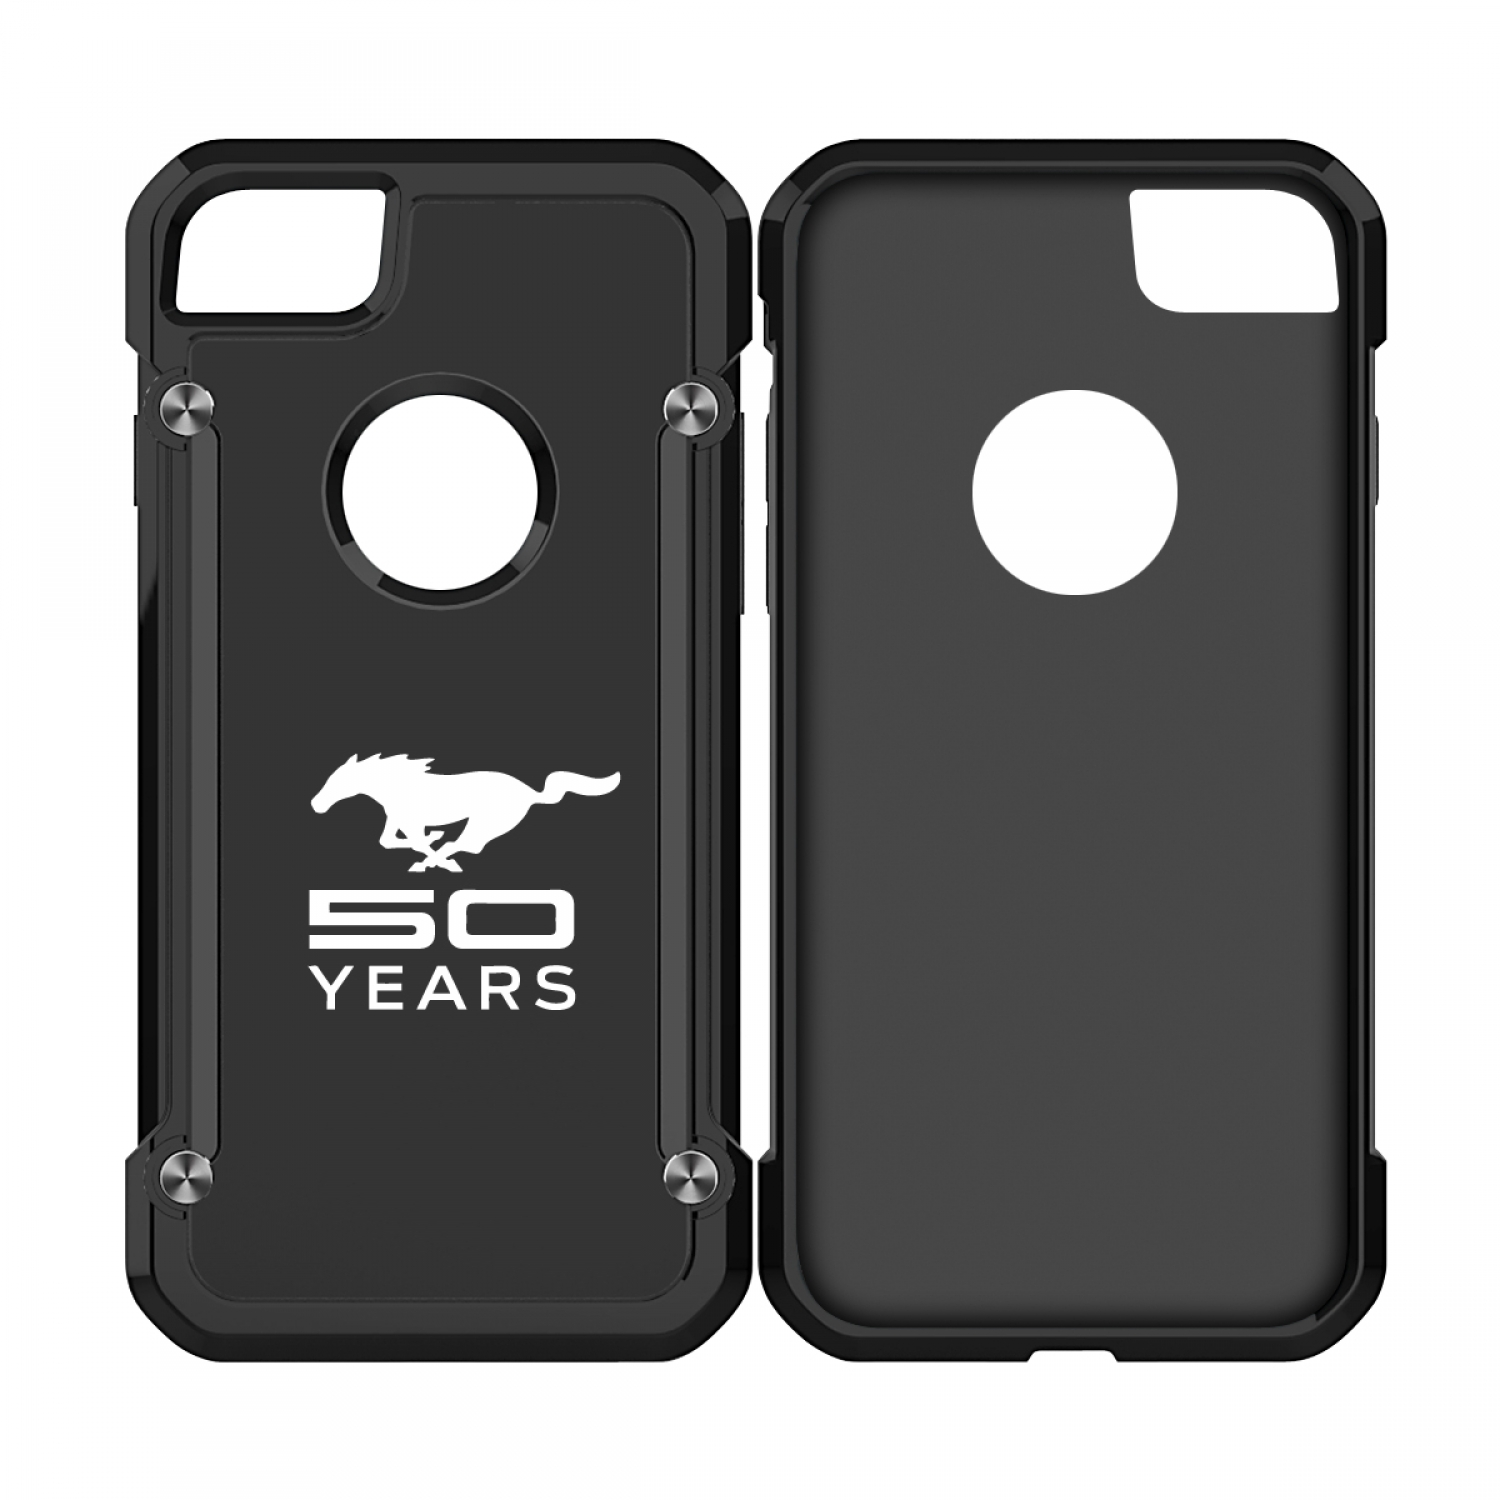 Ford Mustang 50 Years iPhone 7 iPhone 8 TPU Shockproof Clear Cell Phone Case